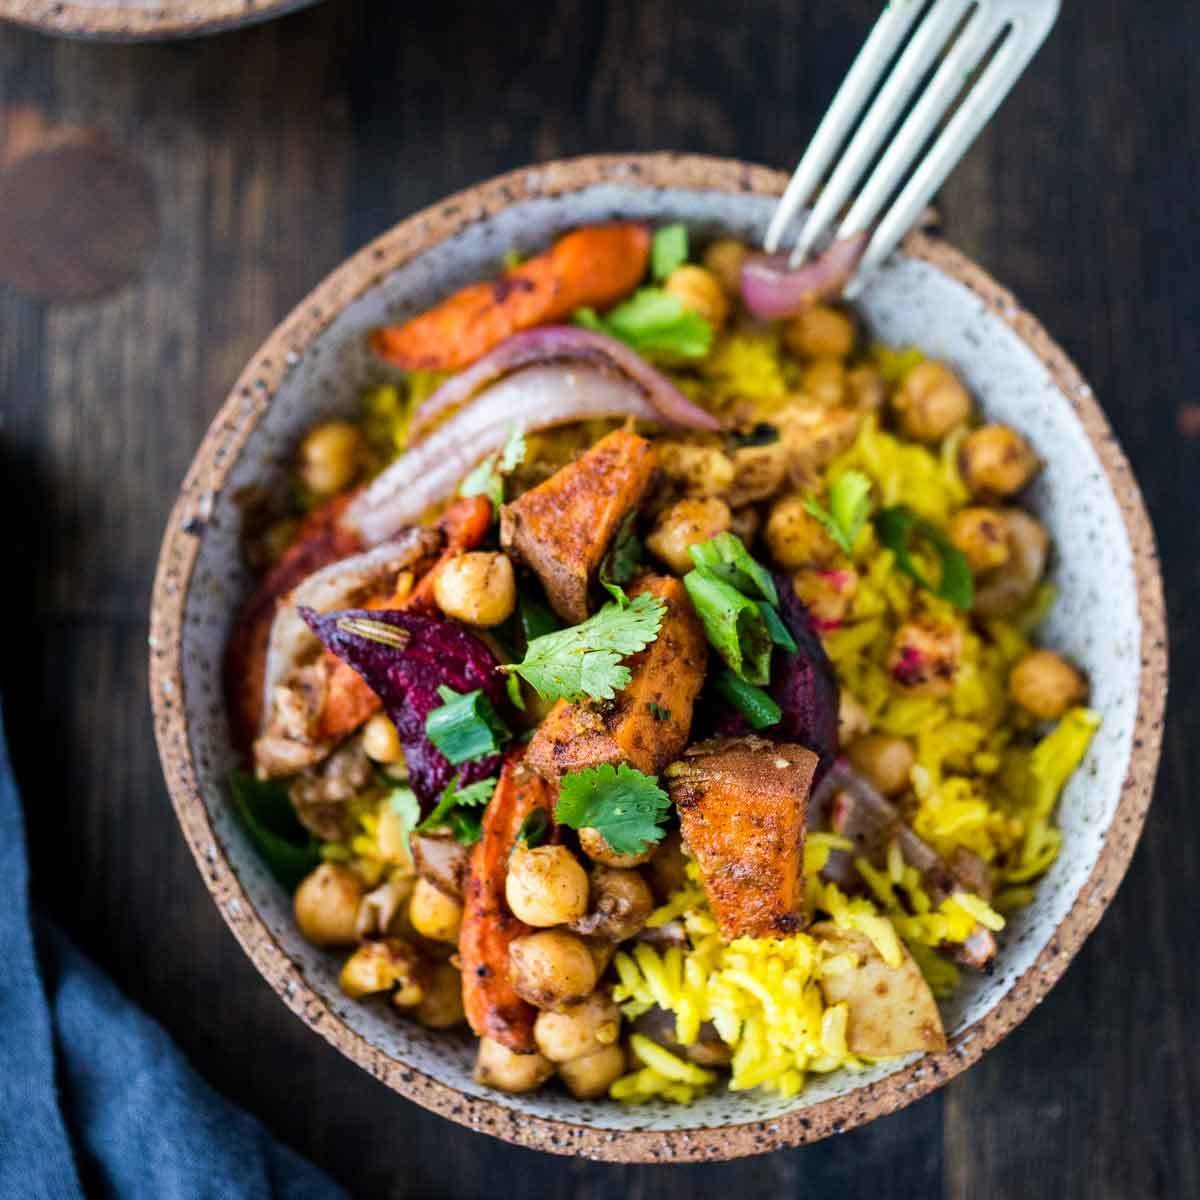 Turmeric Rice Bowl with Garam Masala Root Vegetables & Chickpeas Trusted Brands